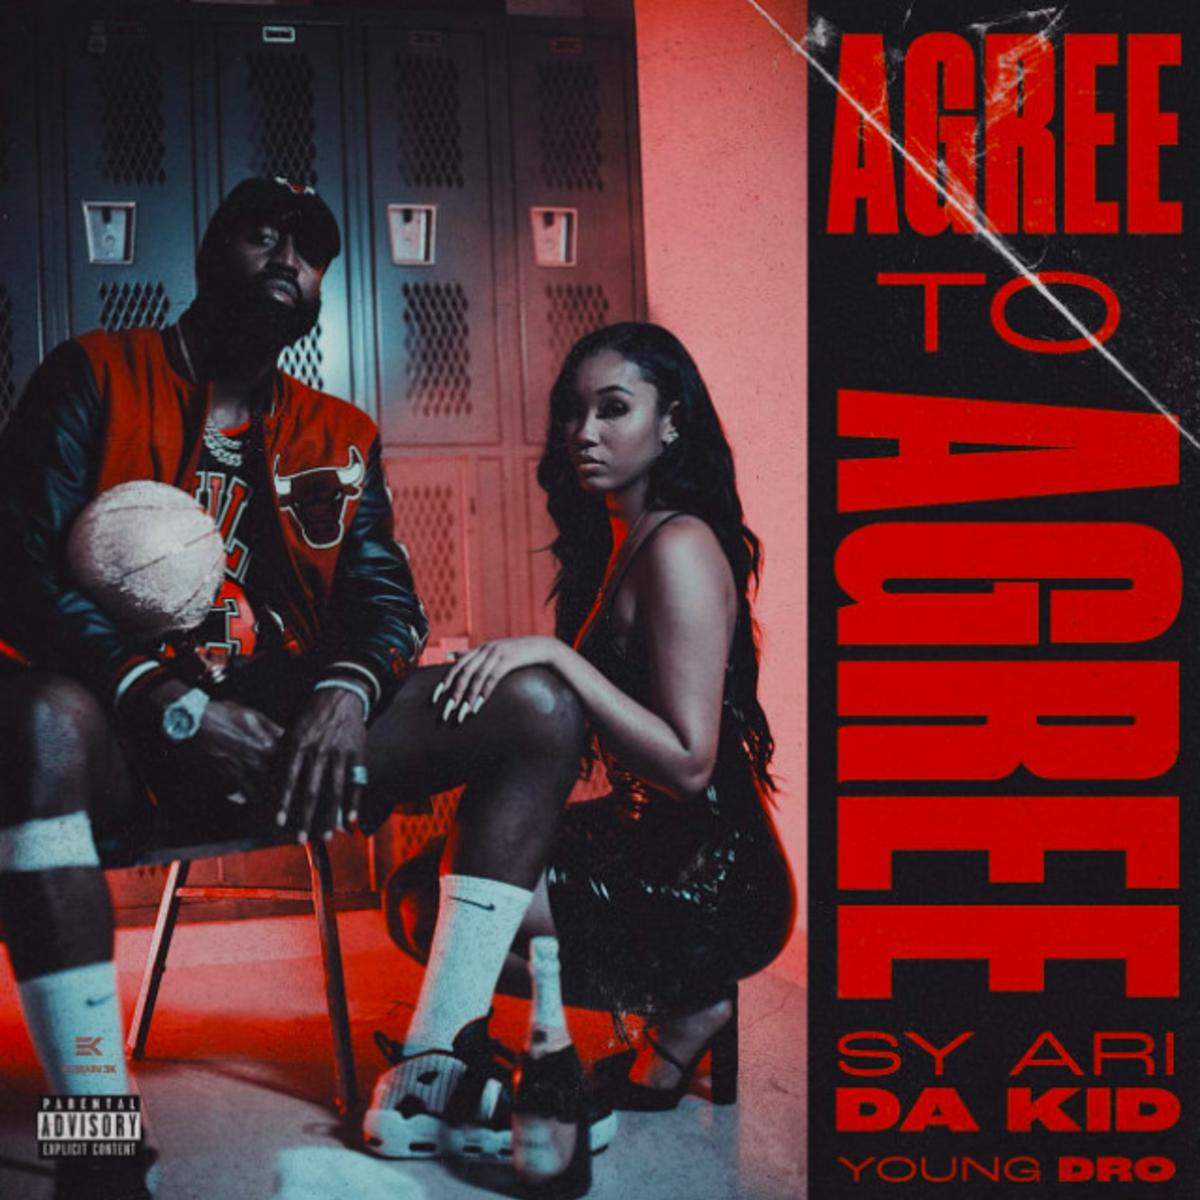 MP3: Sy Ari Da Kid - Agree To Agree Ft. Young Dro